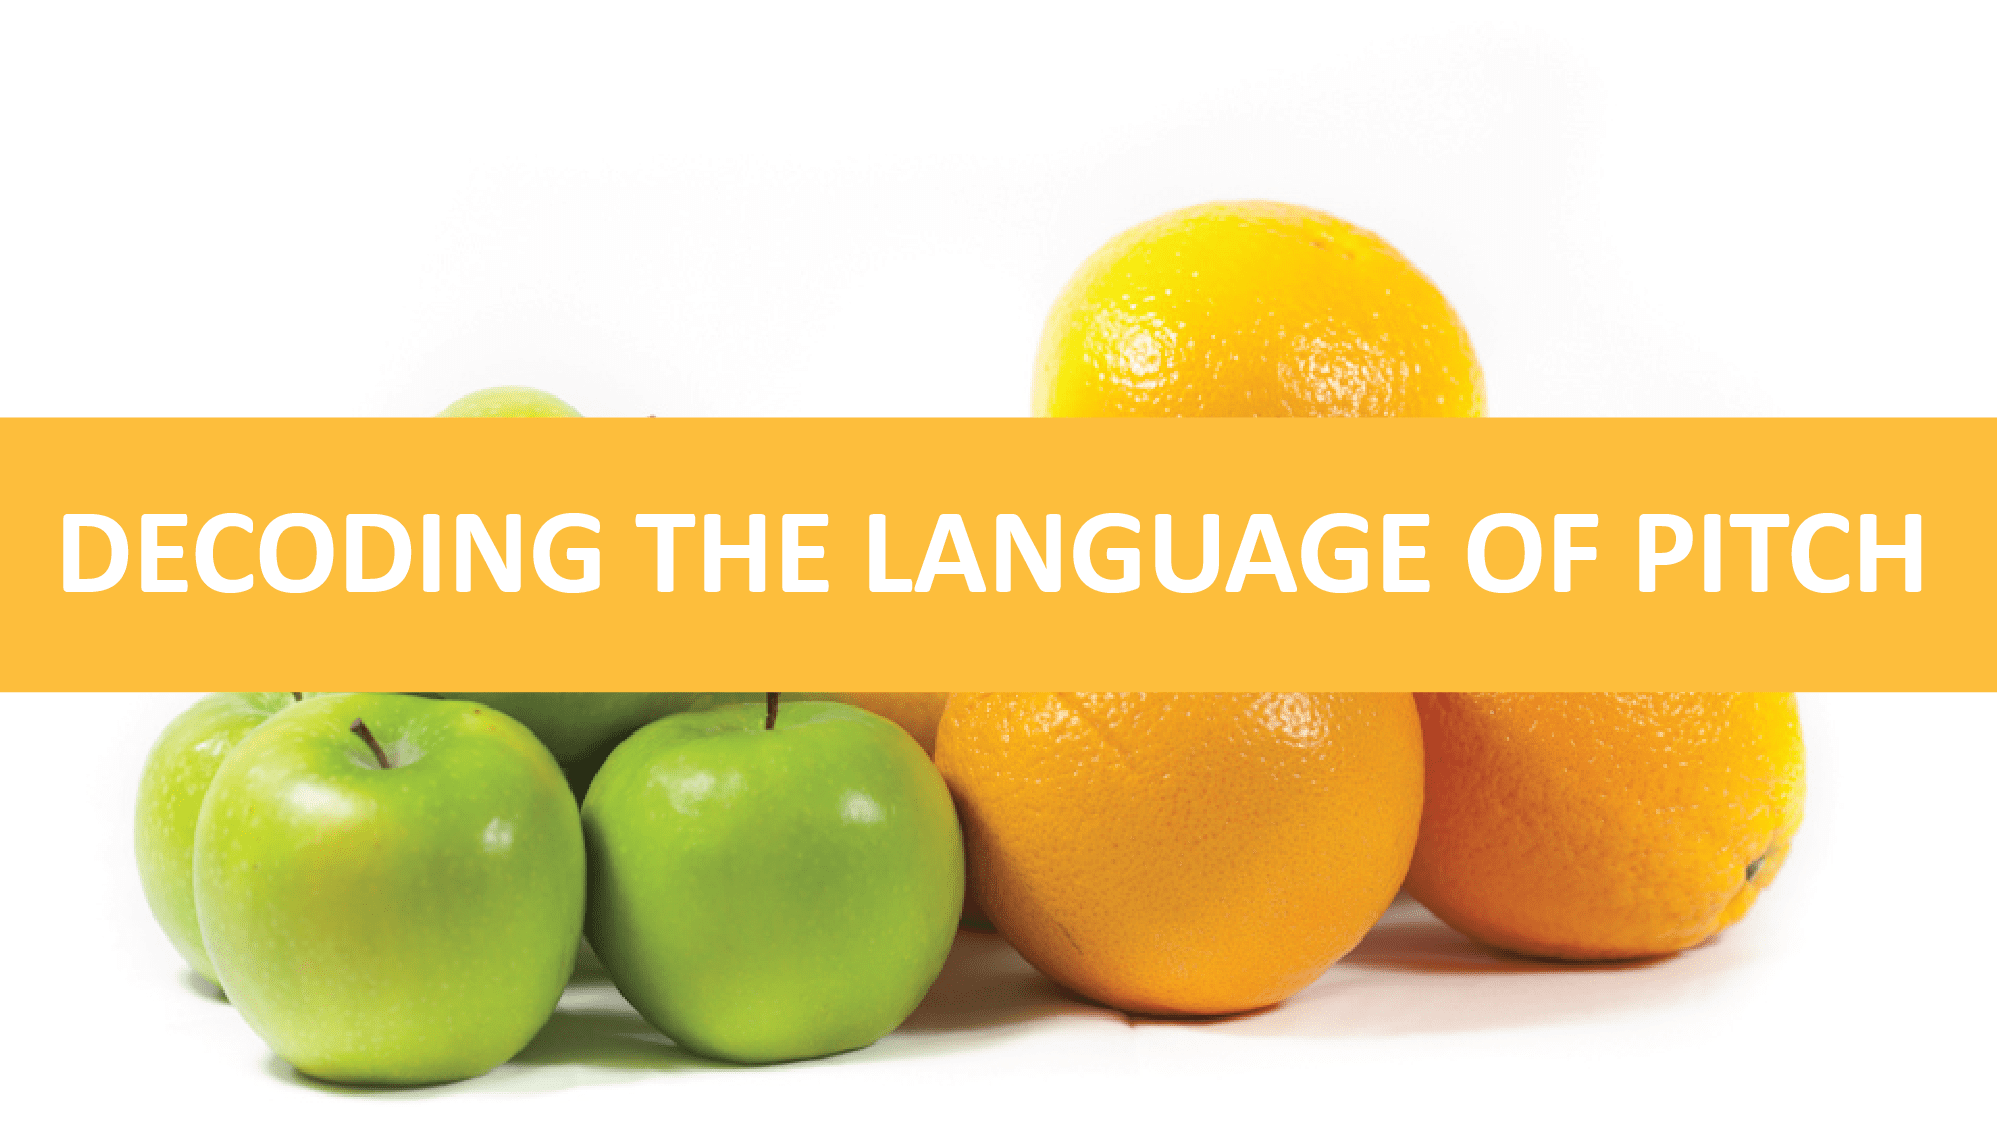 Decode the language of pitch